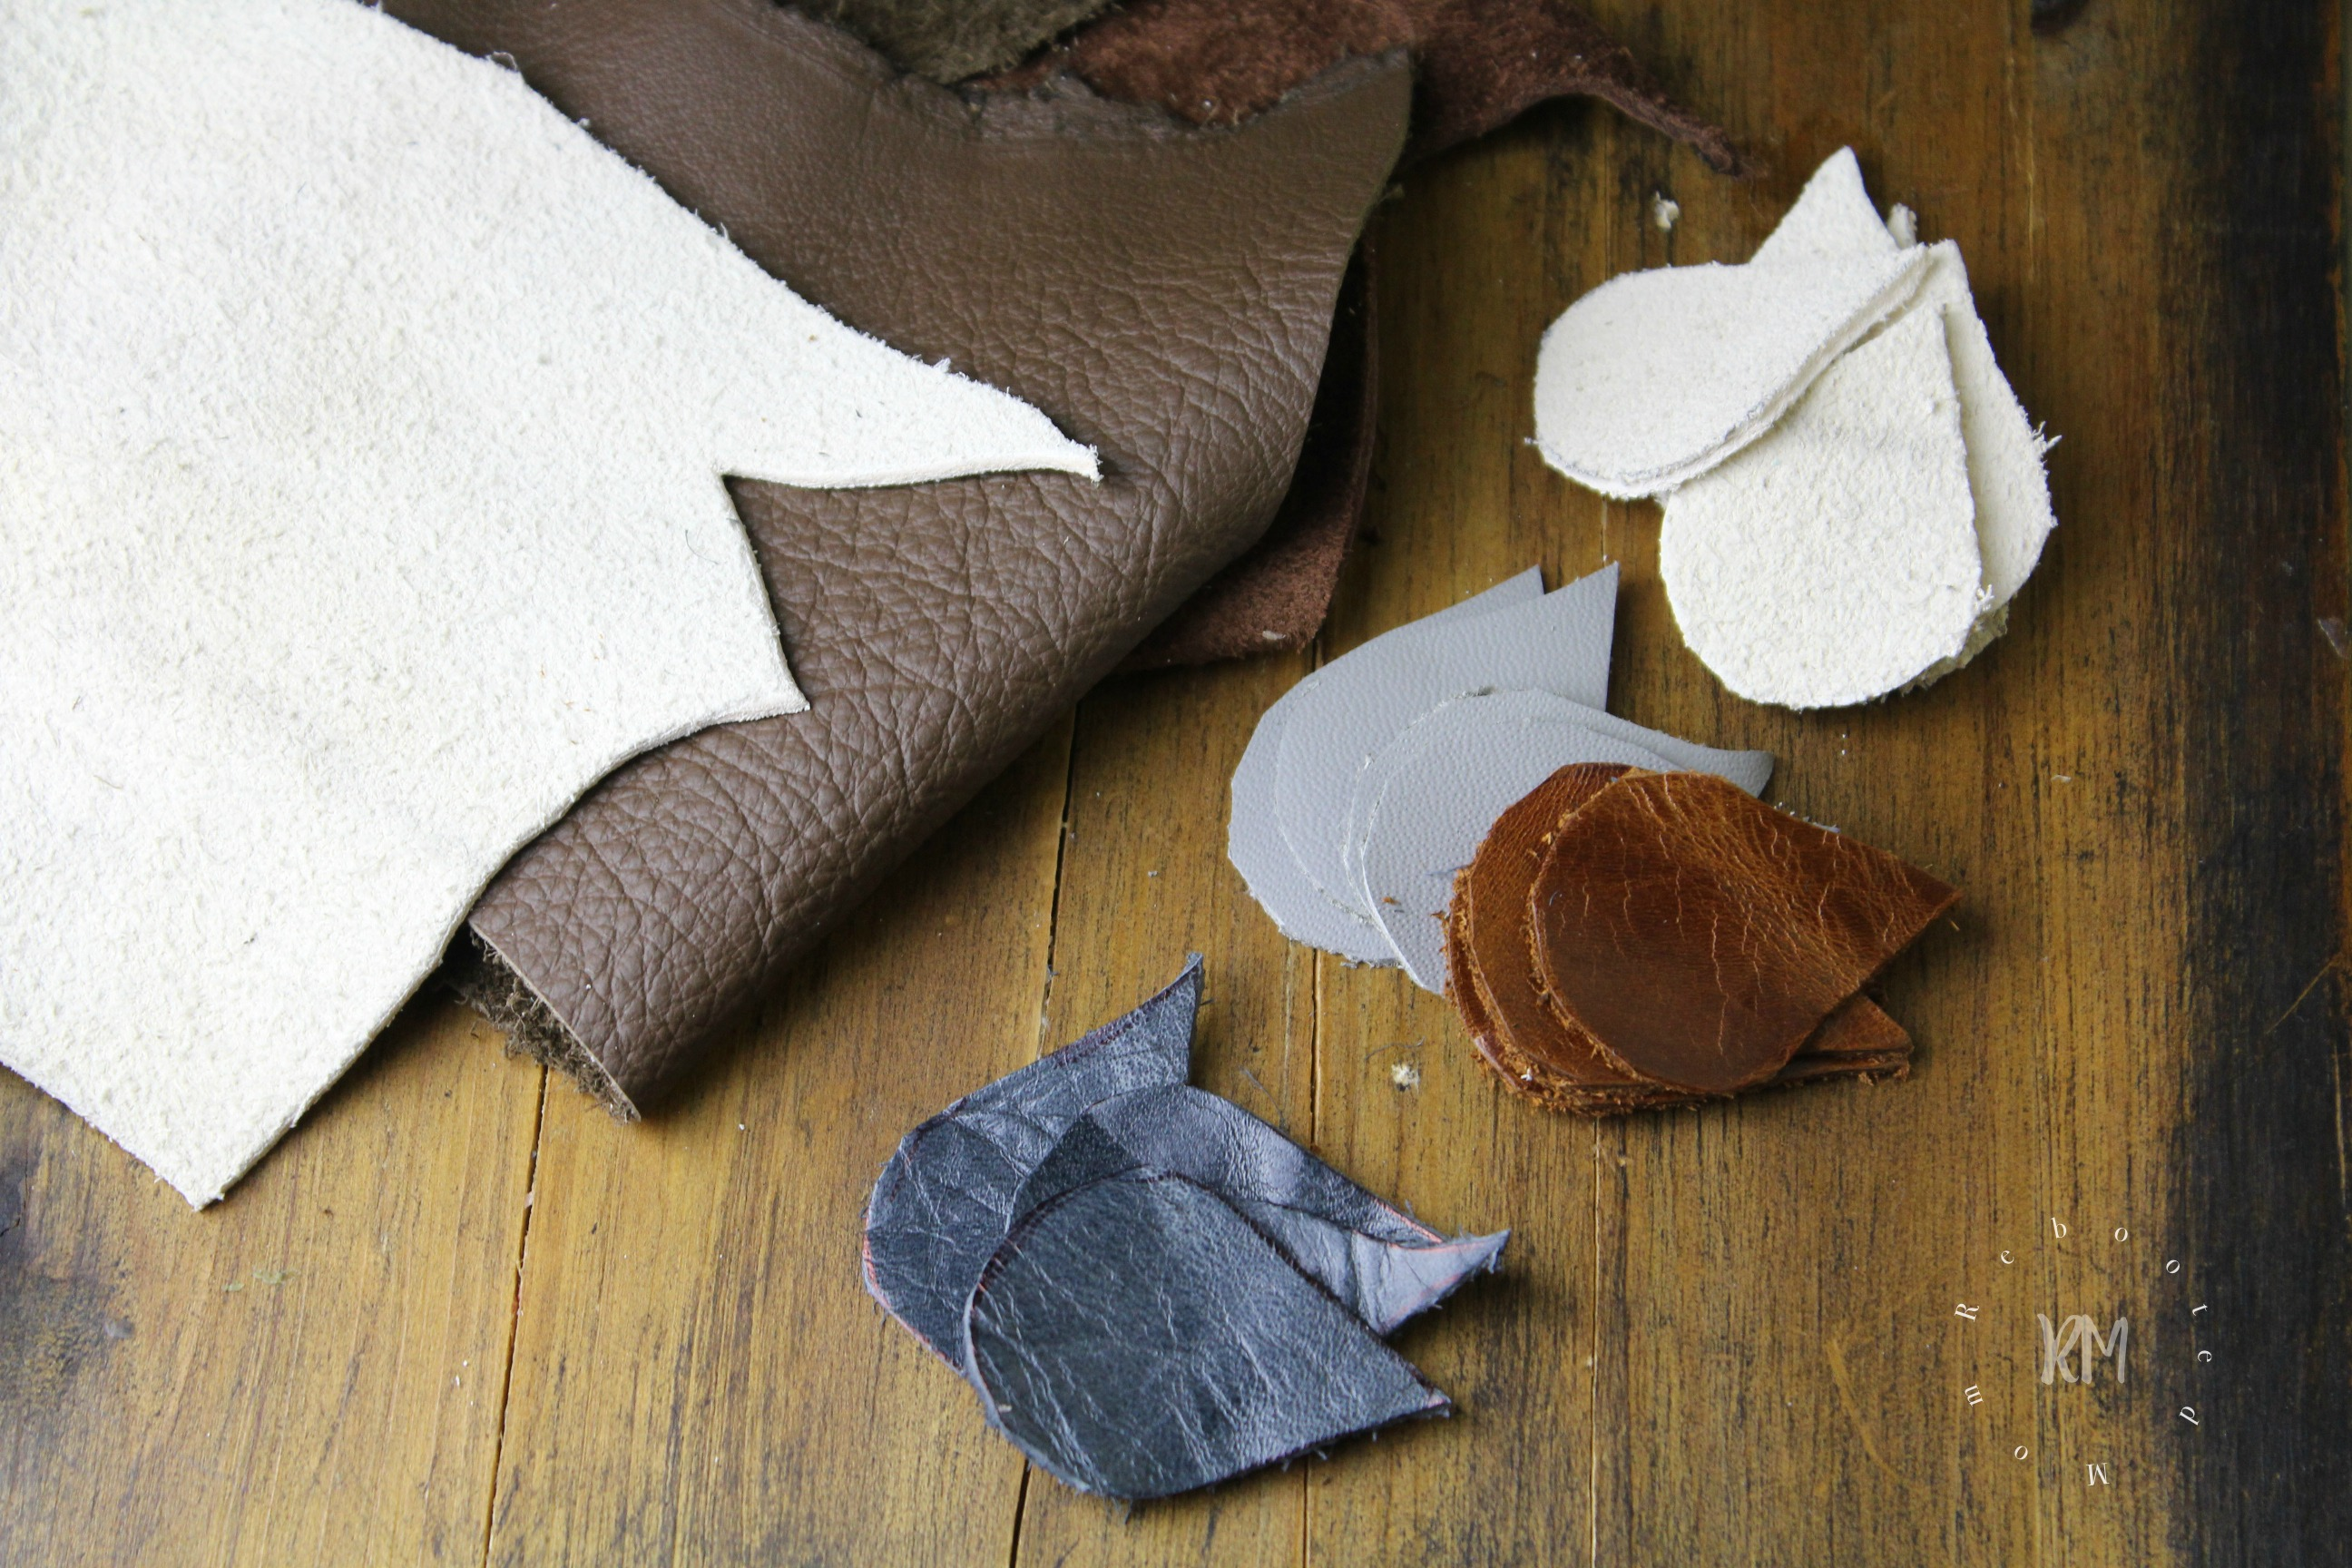 Make the coolest leather earrings with this simple DIY, leather scraps, and a simple tear drop shape file. This is an easy DIY that takes mere minutes!